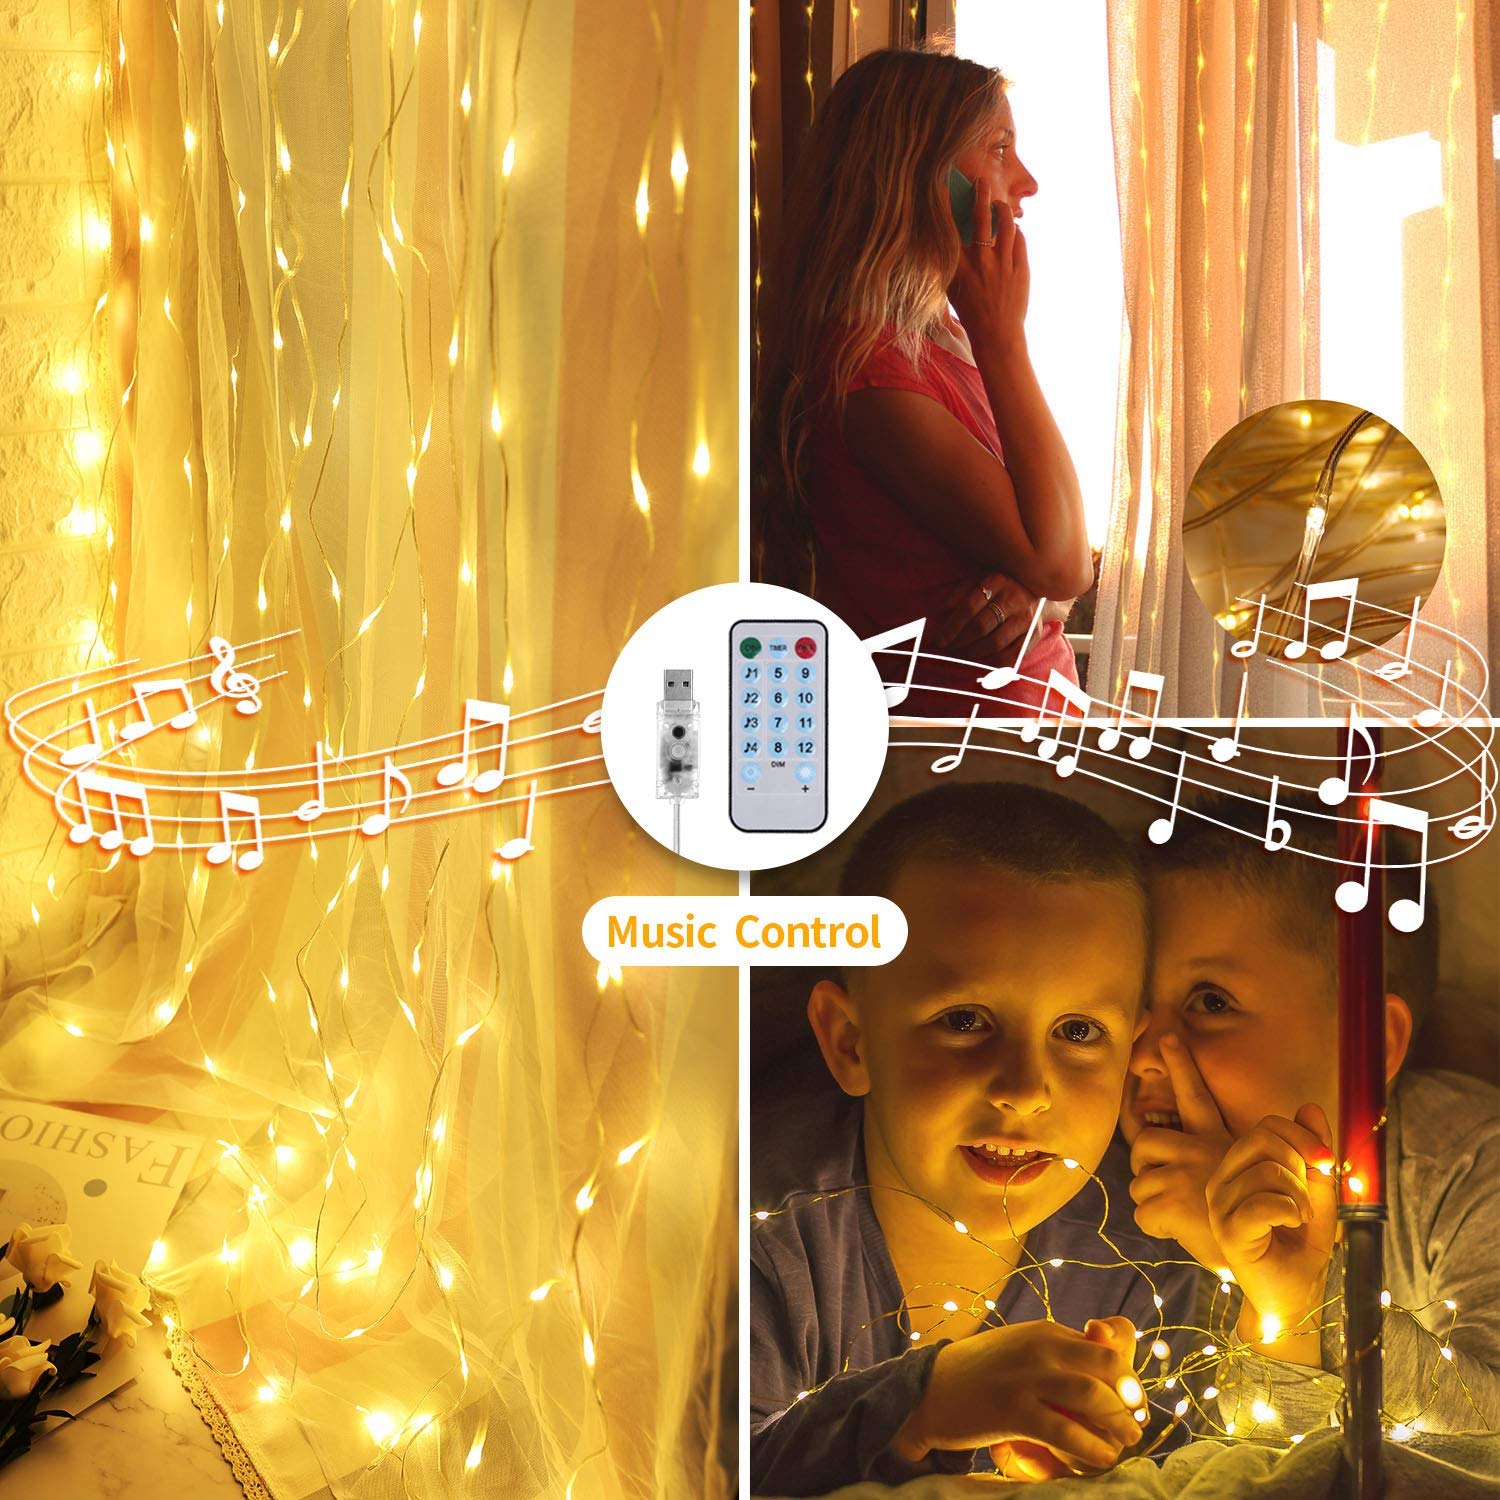 OUSFOT LED Curtain Lights Sound Activated Curtain String Lights 4 Music Modes & 8 Lighting Modes